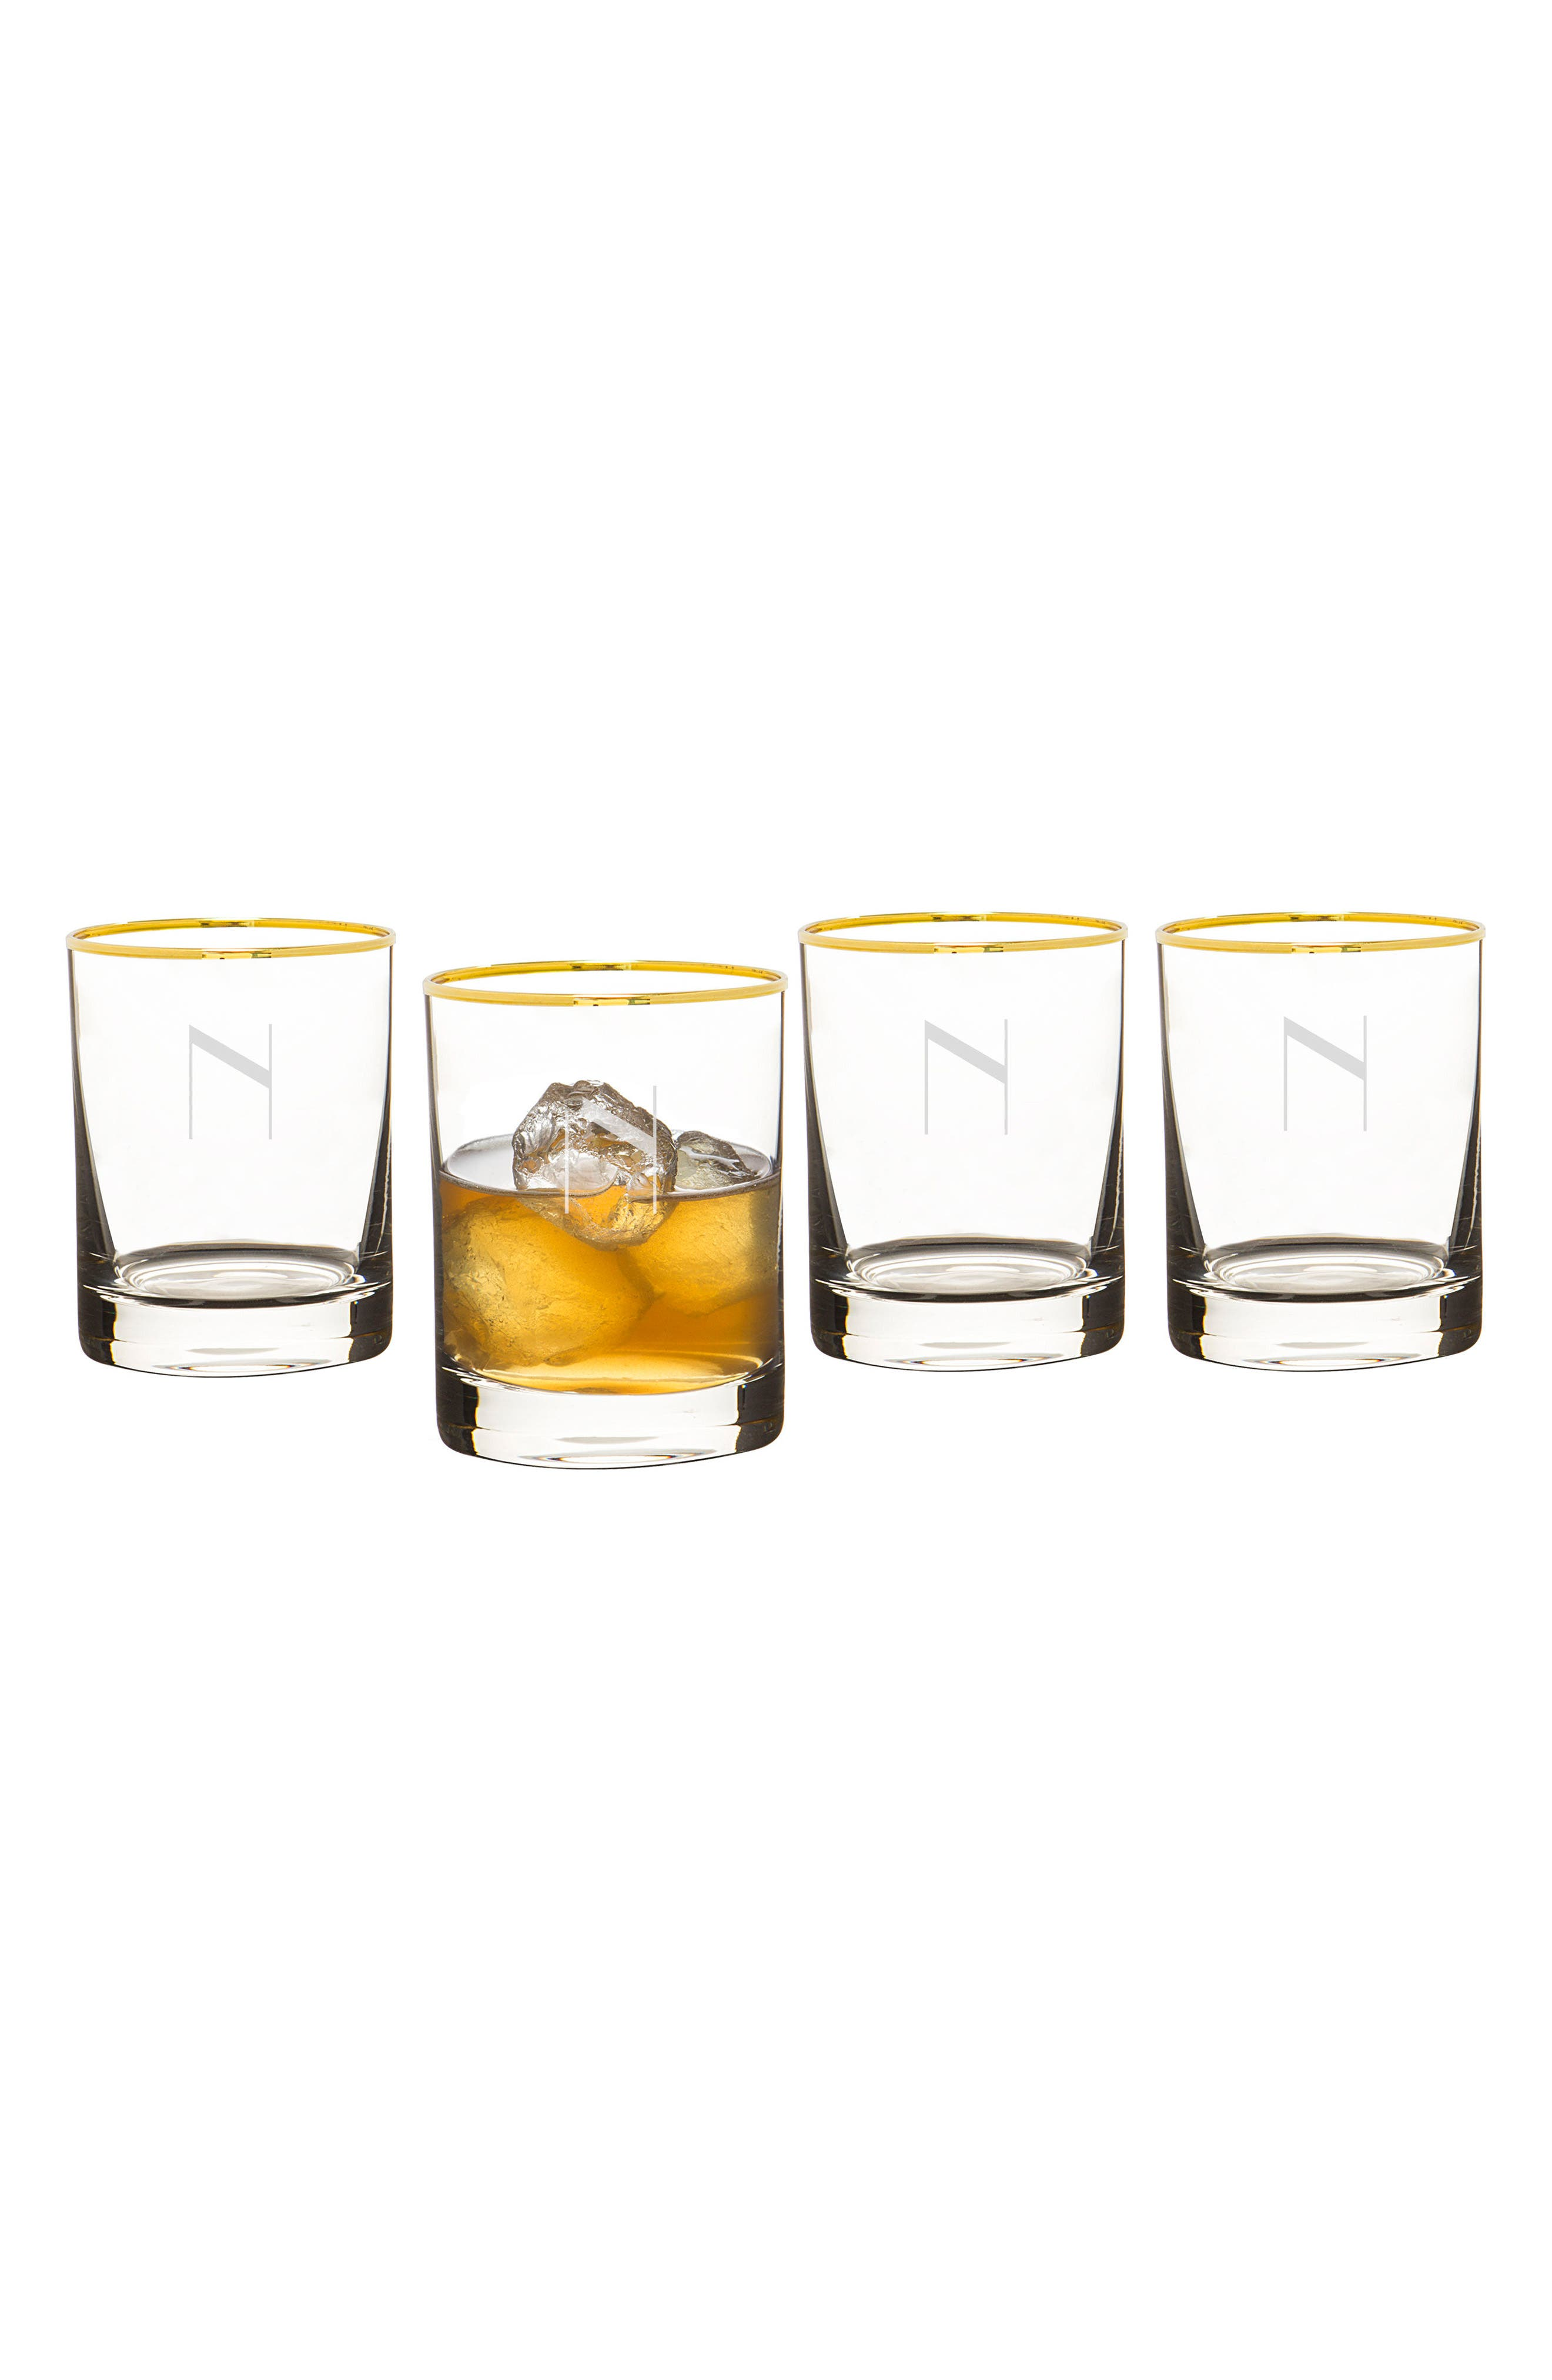 Monogram Set of 4 Double Old Fashioned Glasses,                             Main thumbnail 15, color,